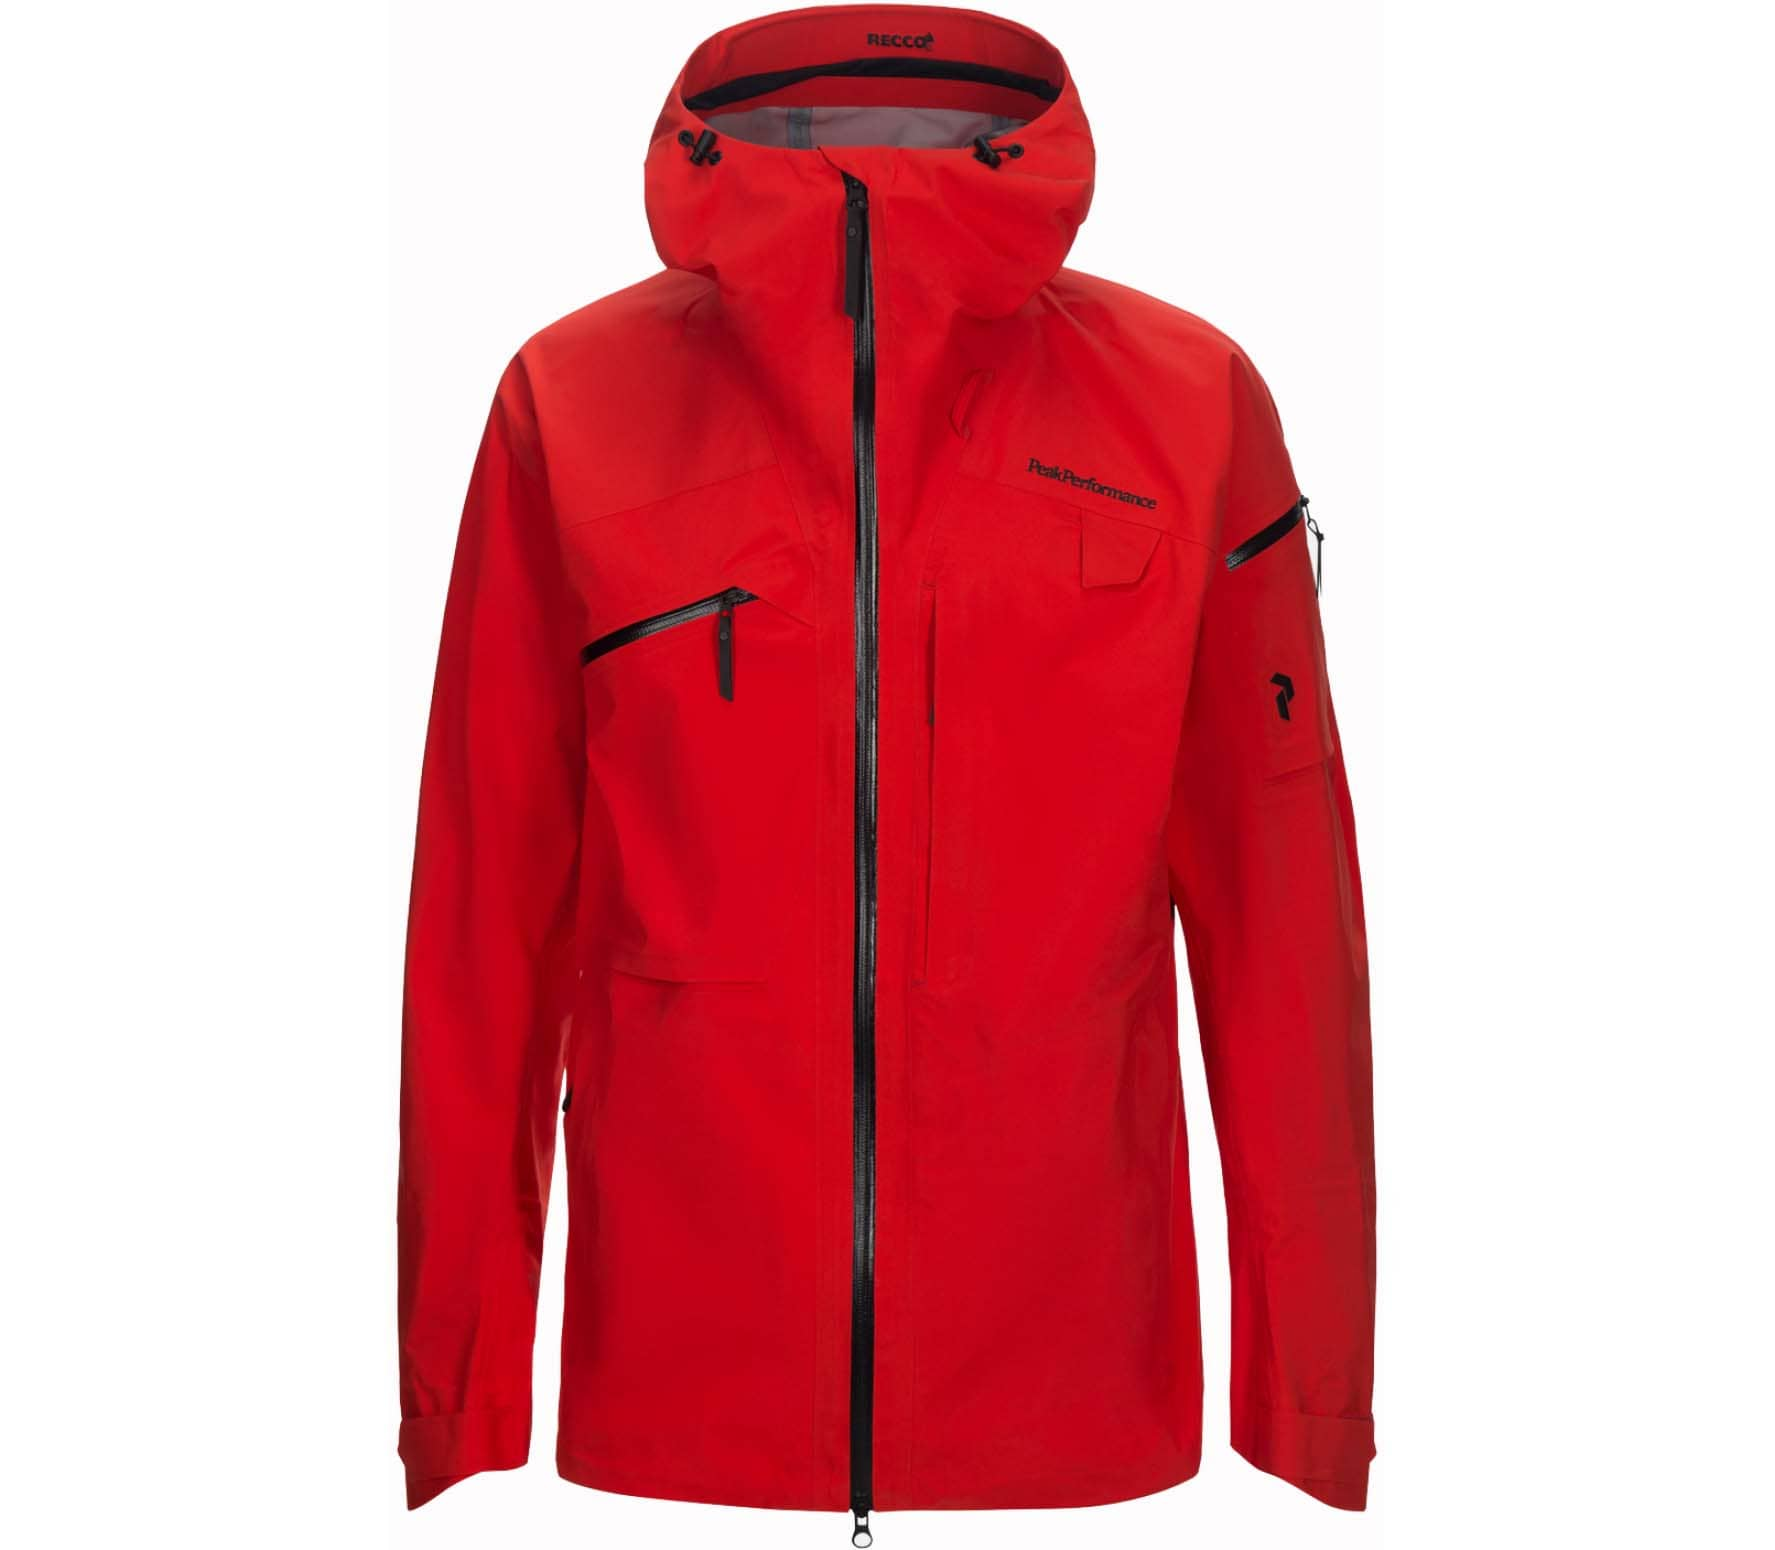 Peak Performance - Alpine men's ski jacket (red)